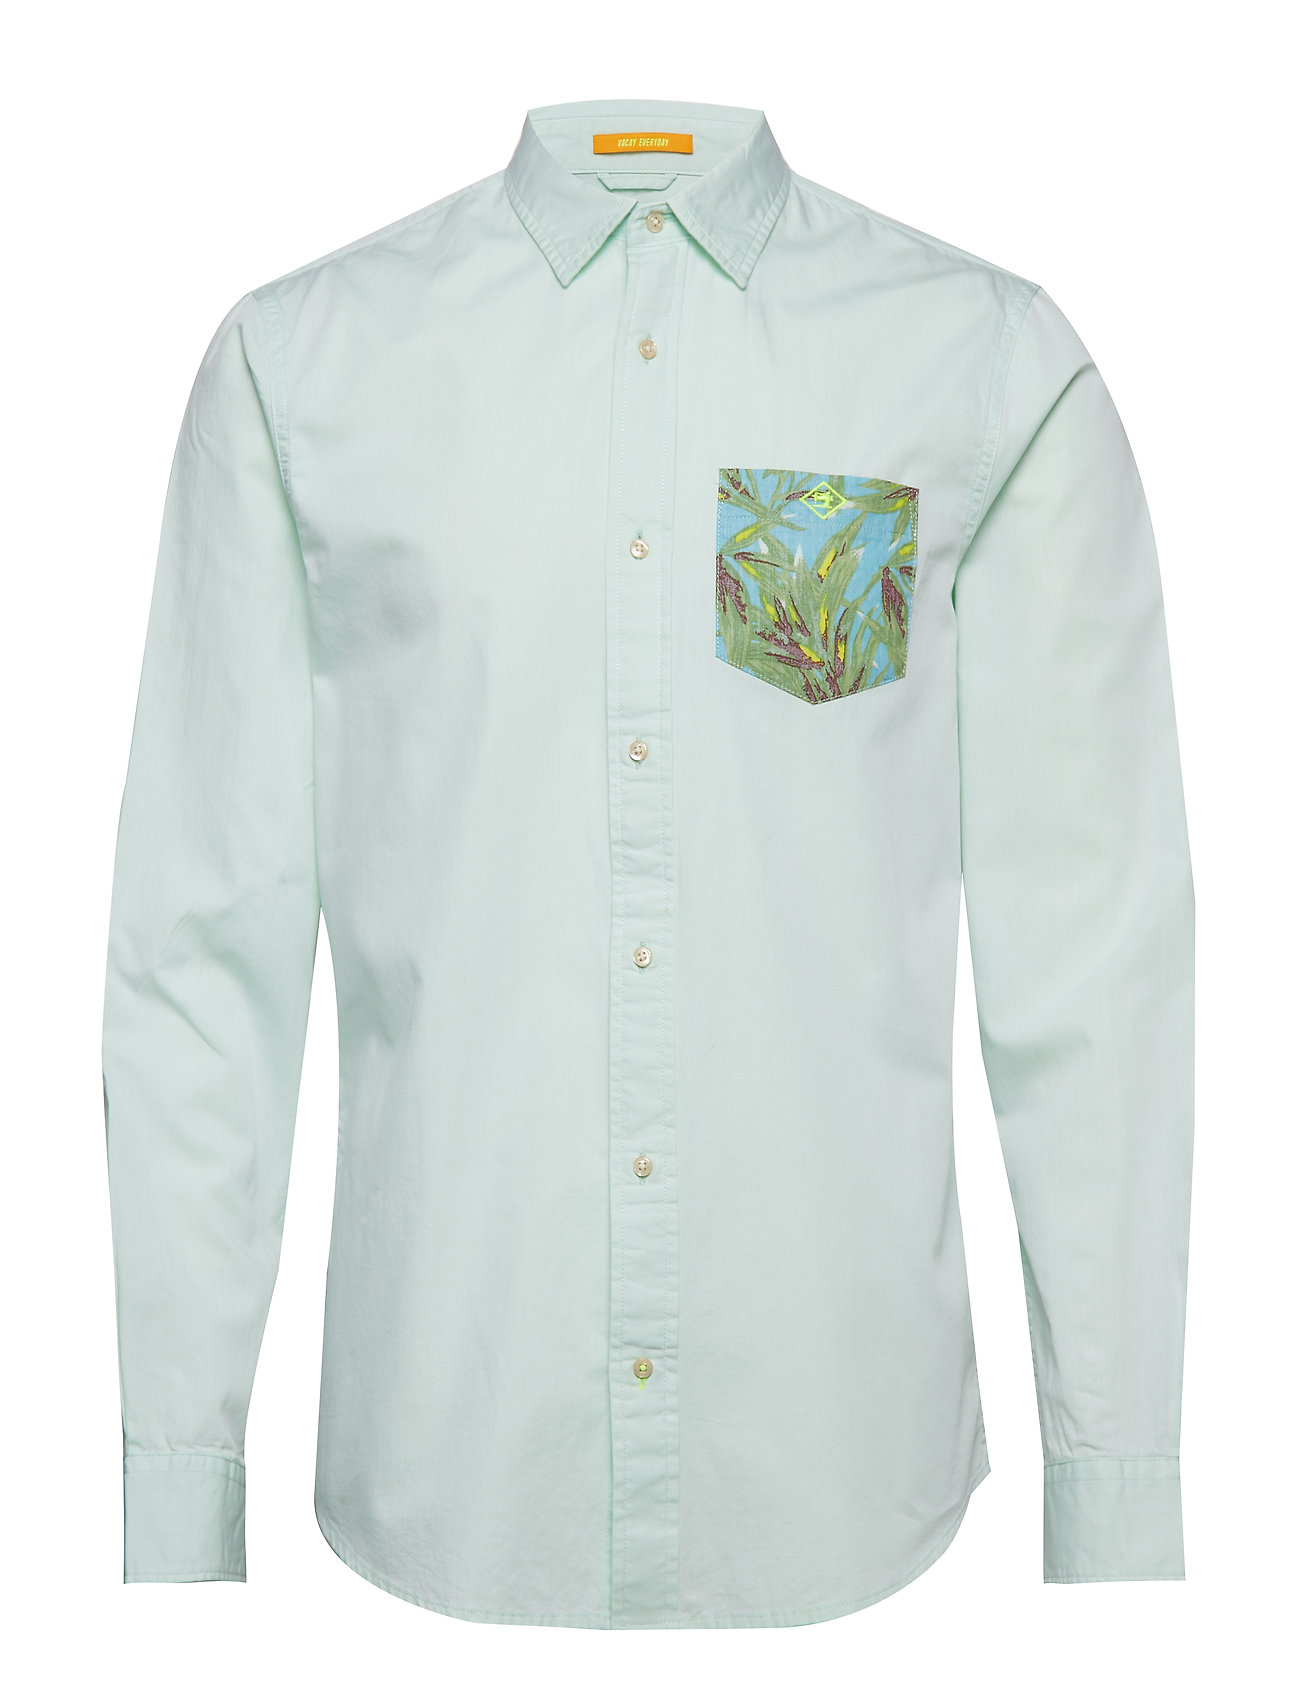 Scotch & Soda RELAXED FIT Lightweight summer shirt Ögrönlar